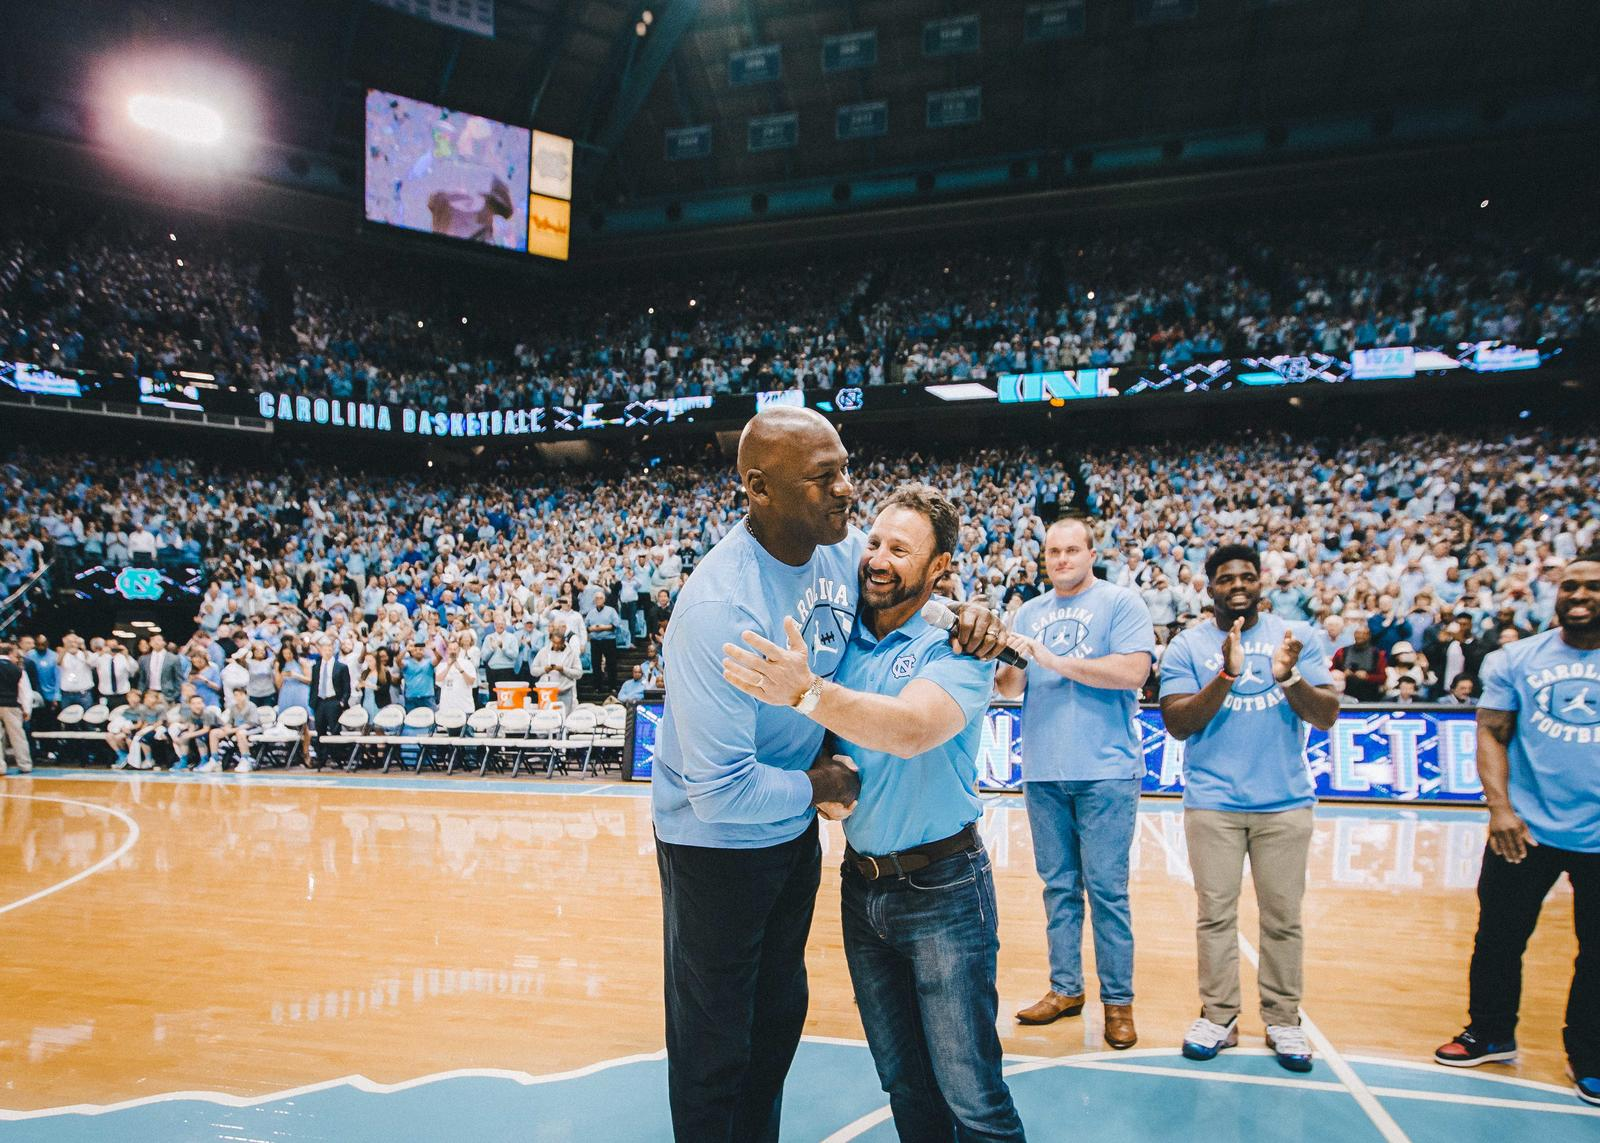 Jordan Brand Expands Partnership with UNC to Include Football 5